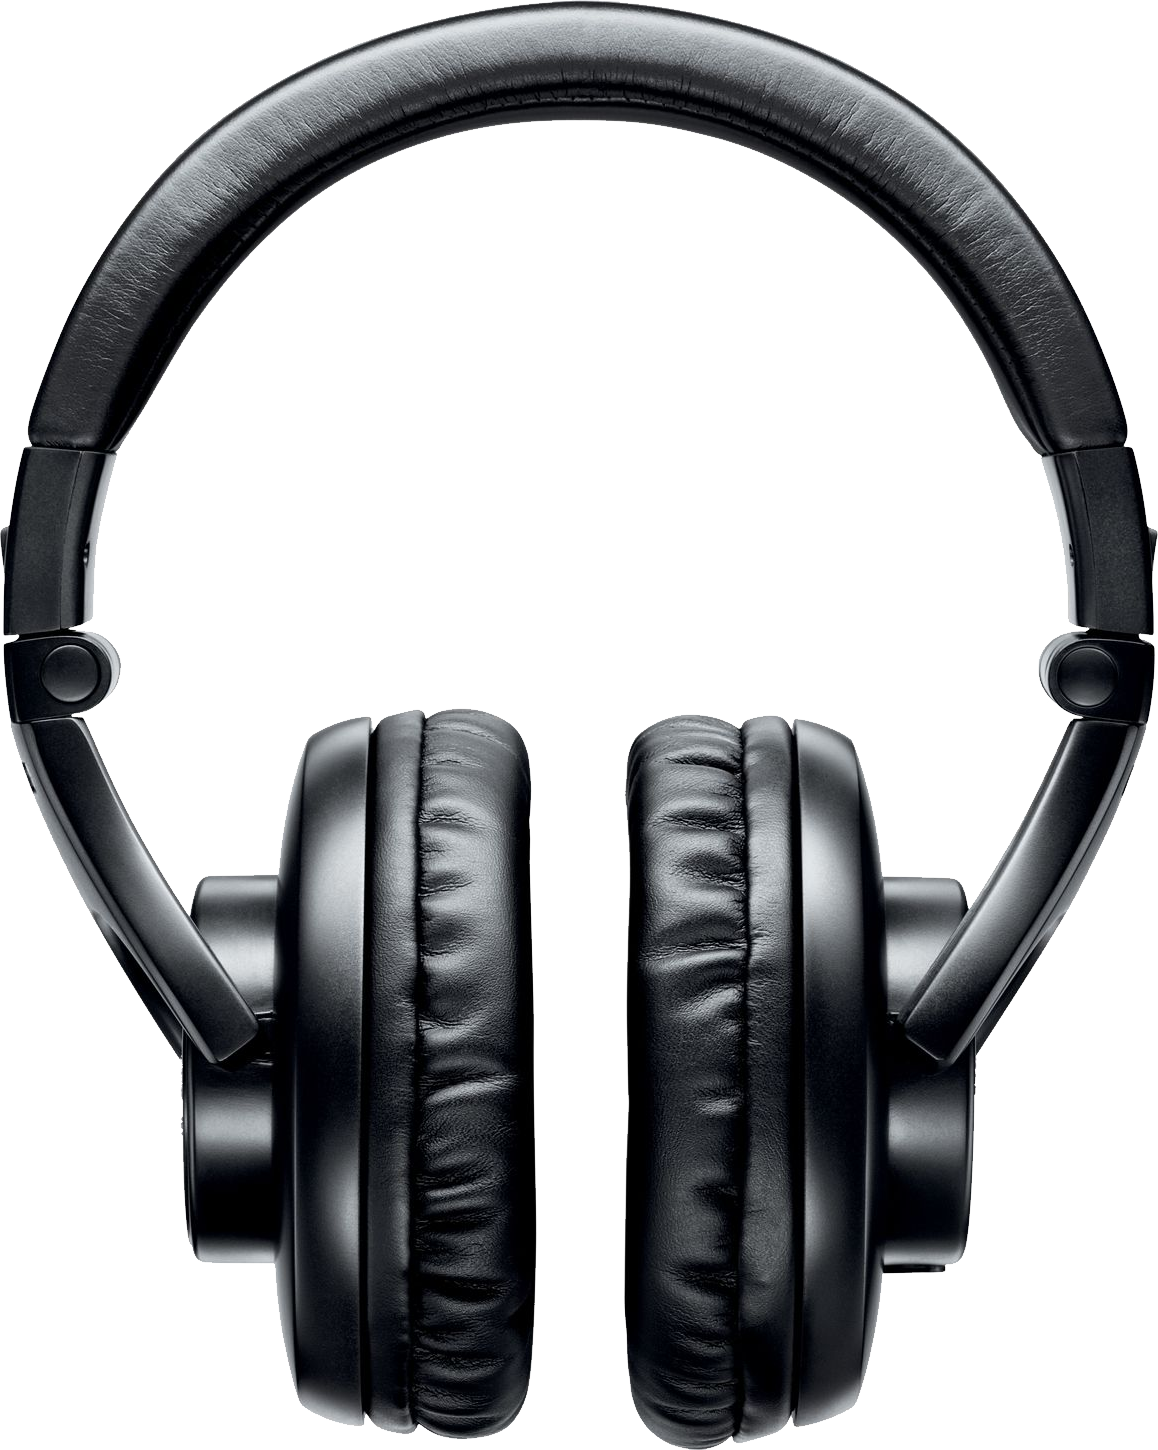 Headphones clipart transparent background. Png image without web